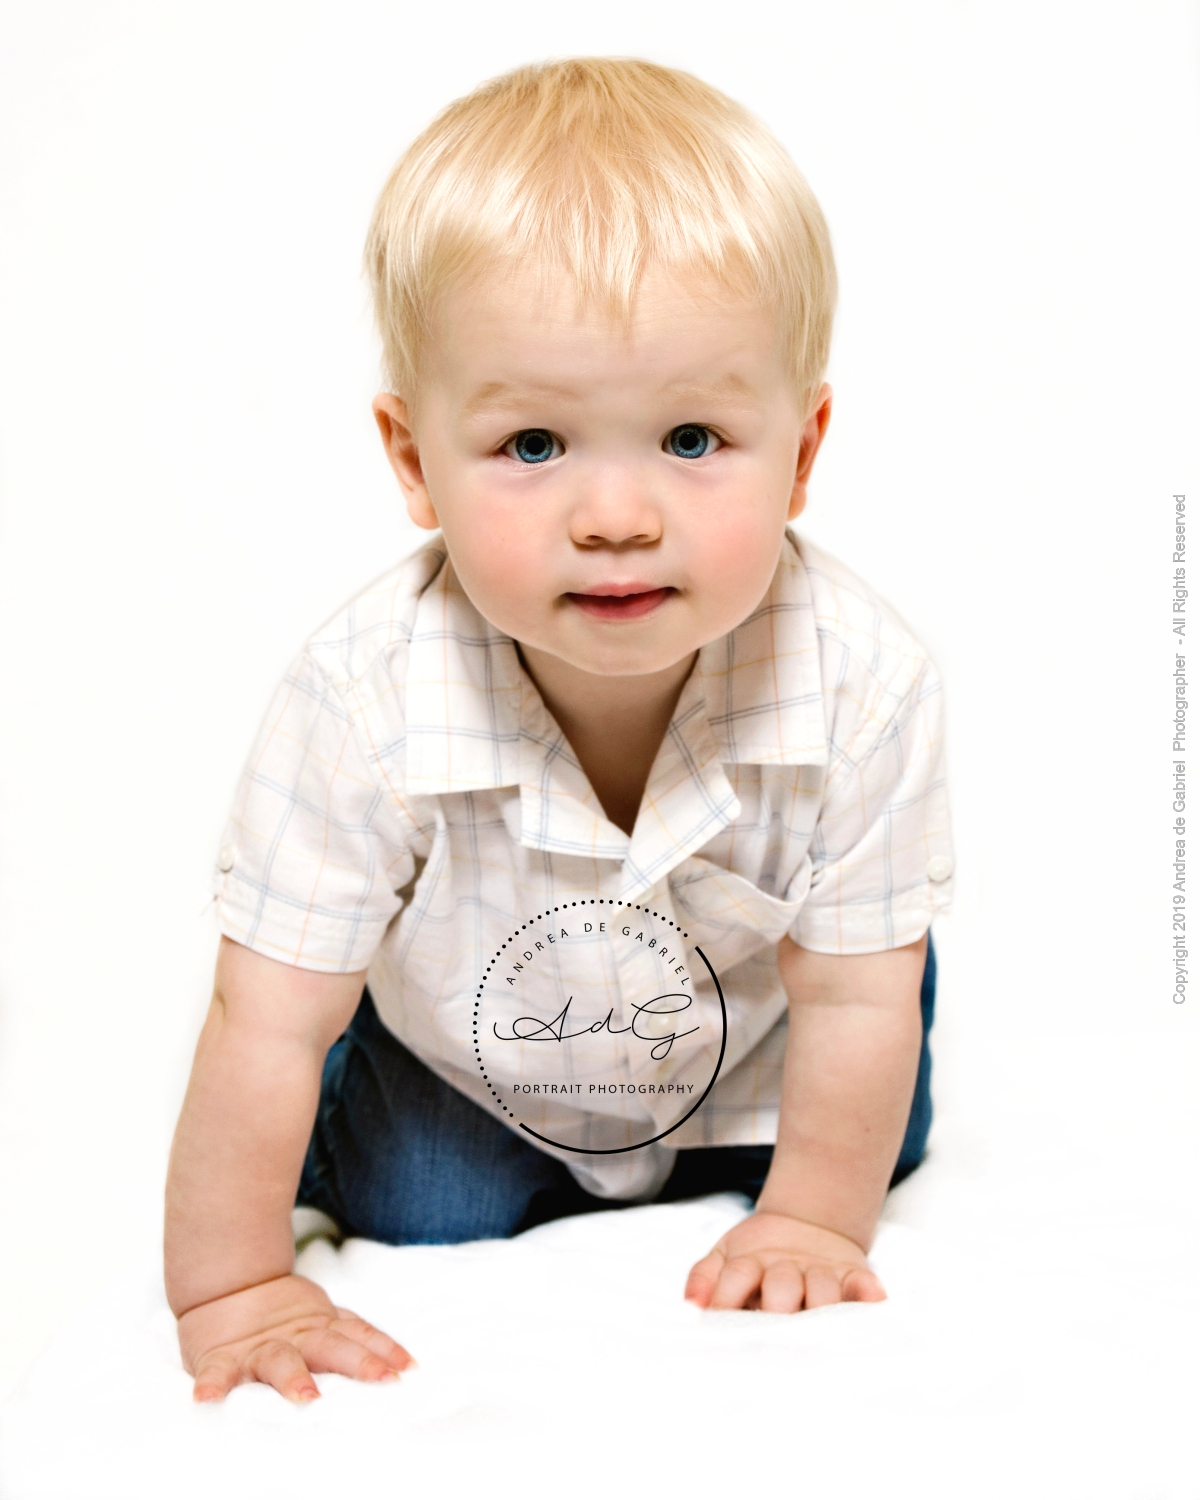 - For example… Many parents will always prefer a whitewashed image of their child because they feel that it does not detract from the subject on the portrait, and it is more traditional.